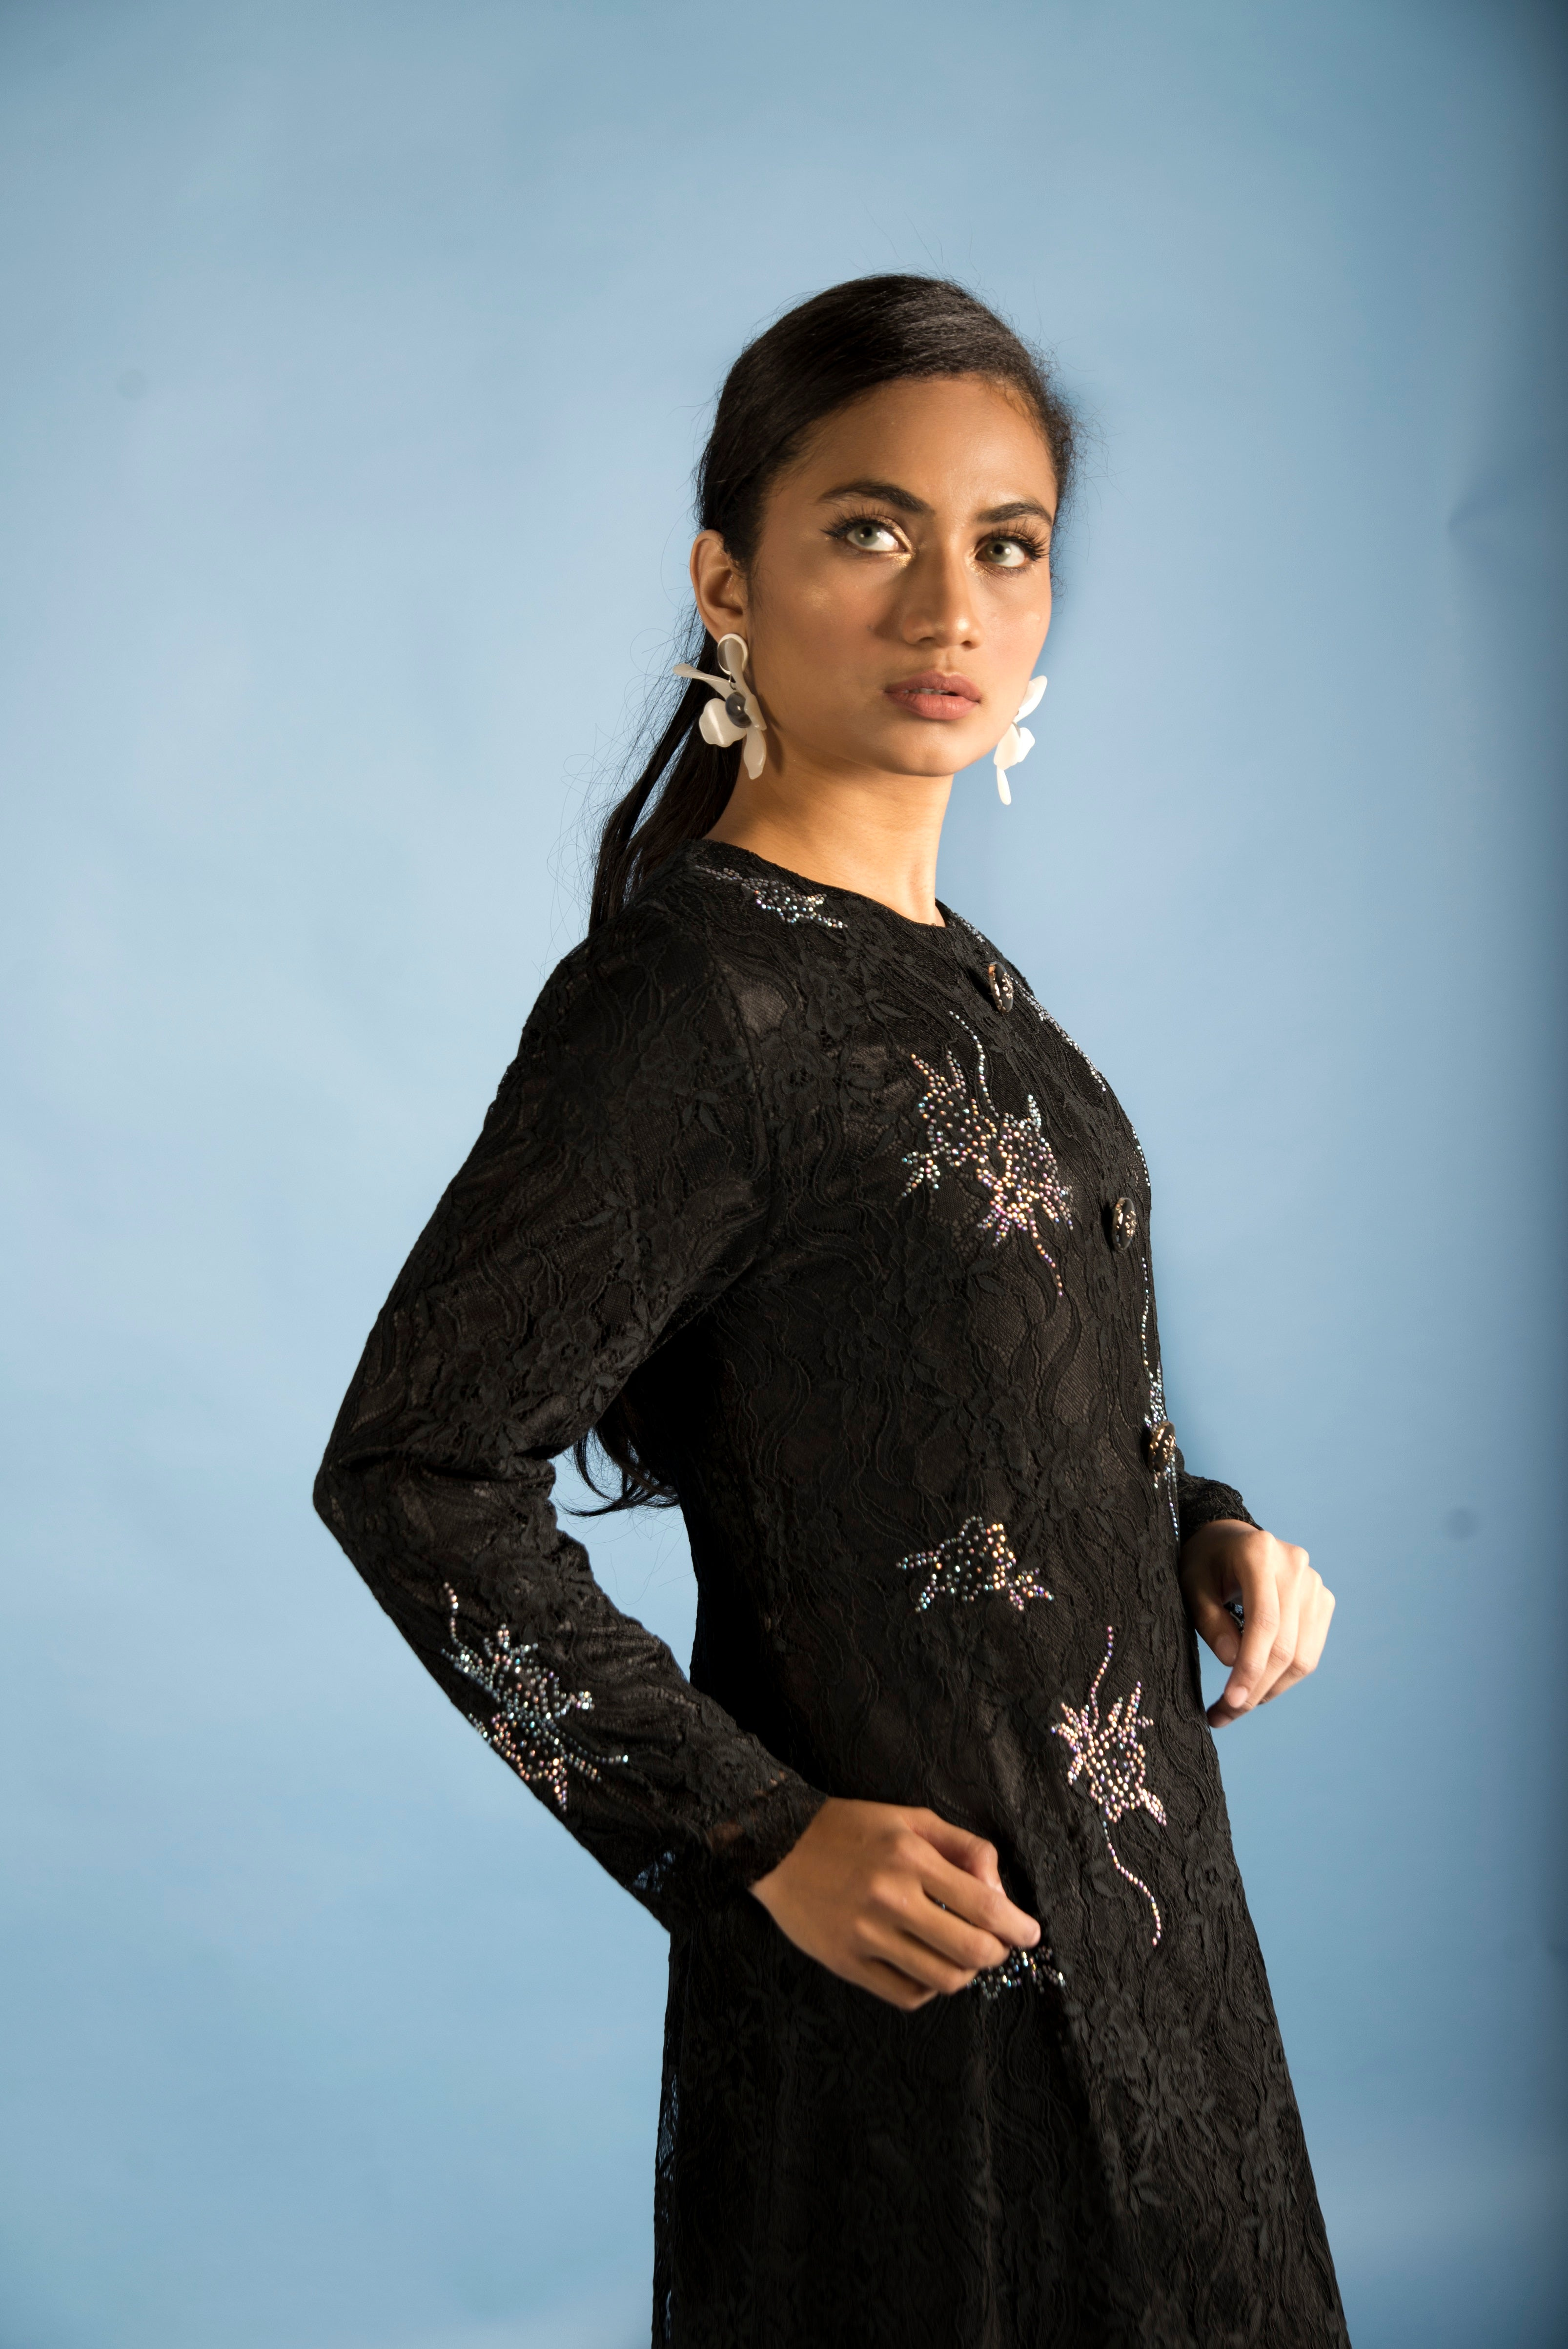 Load image into Gallery viewer, Elegant Black Lace Modern Long Dress with Intricate Stone Work